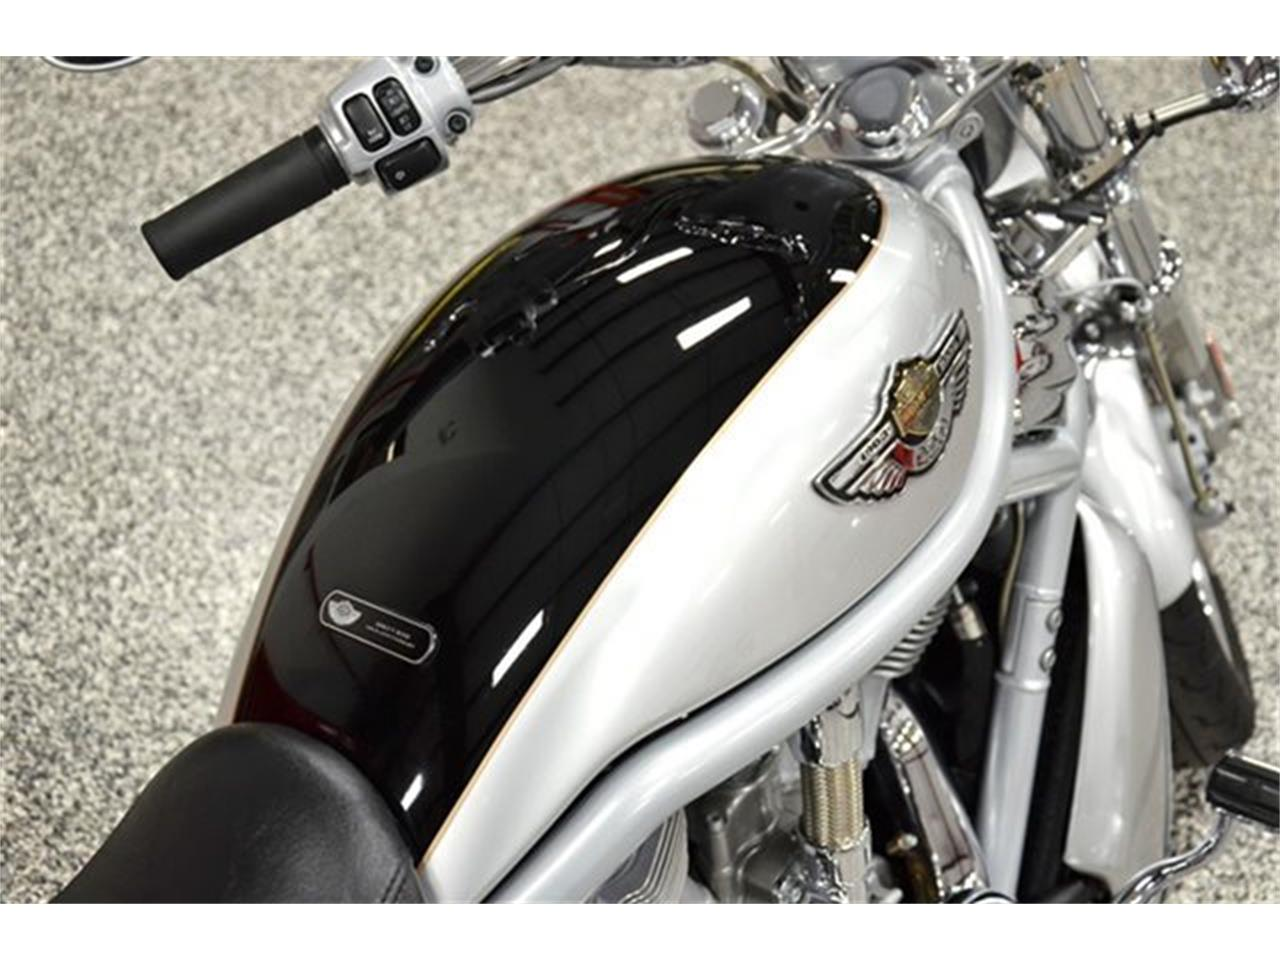 2003 Harley-Davidson VRSC for sale in Plainfield, IL – photo 8